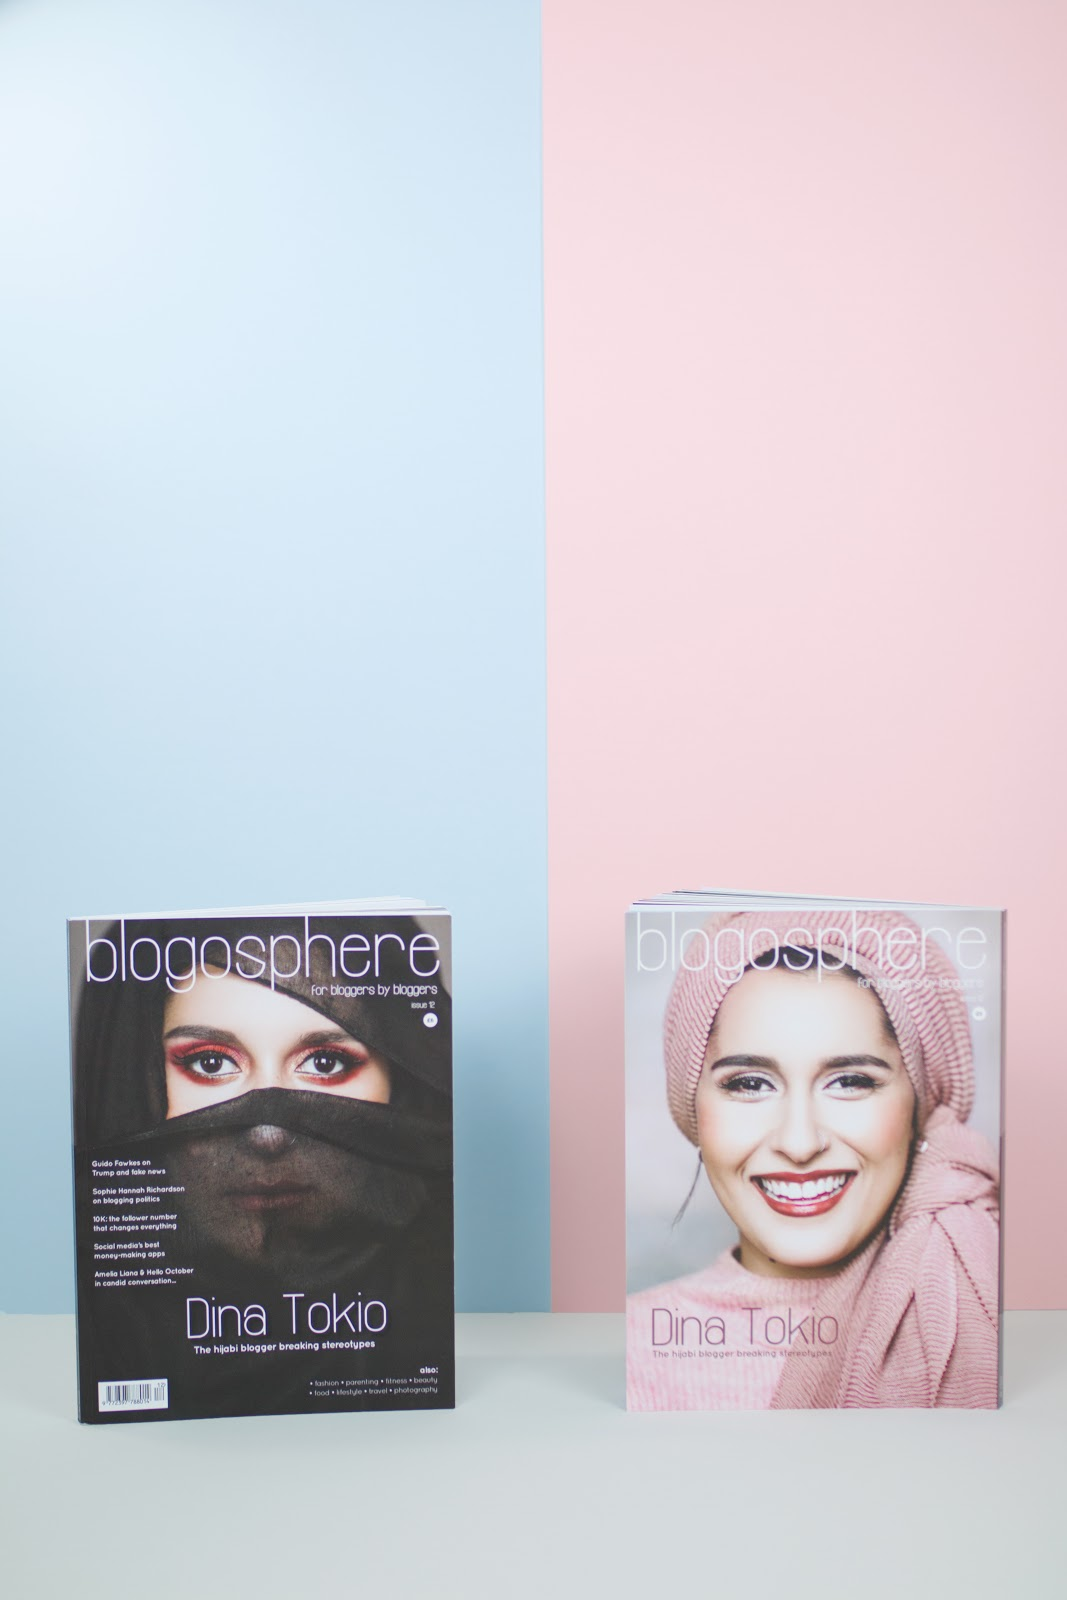 I'M IN BLOGOSPHERE MAGAZINE ISSUE 12!